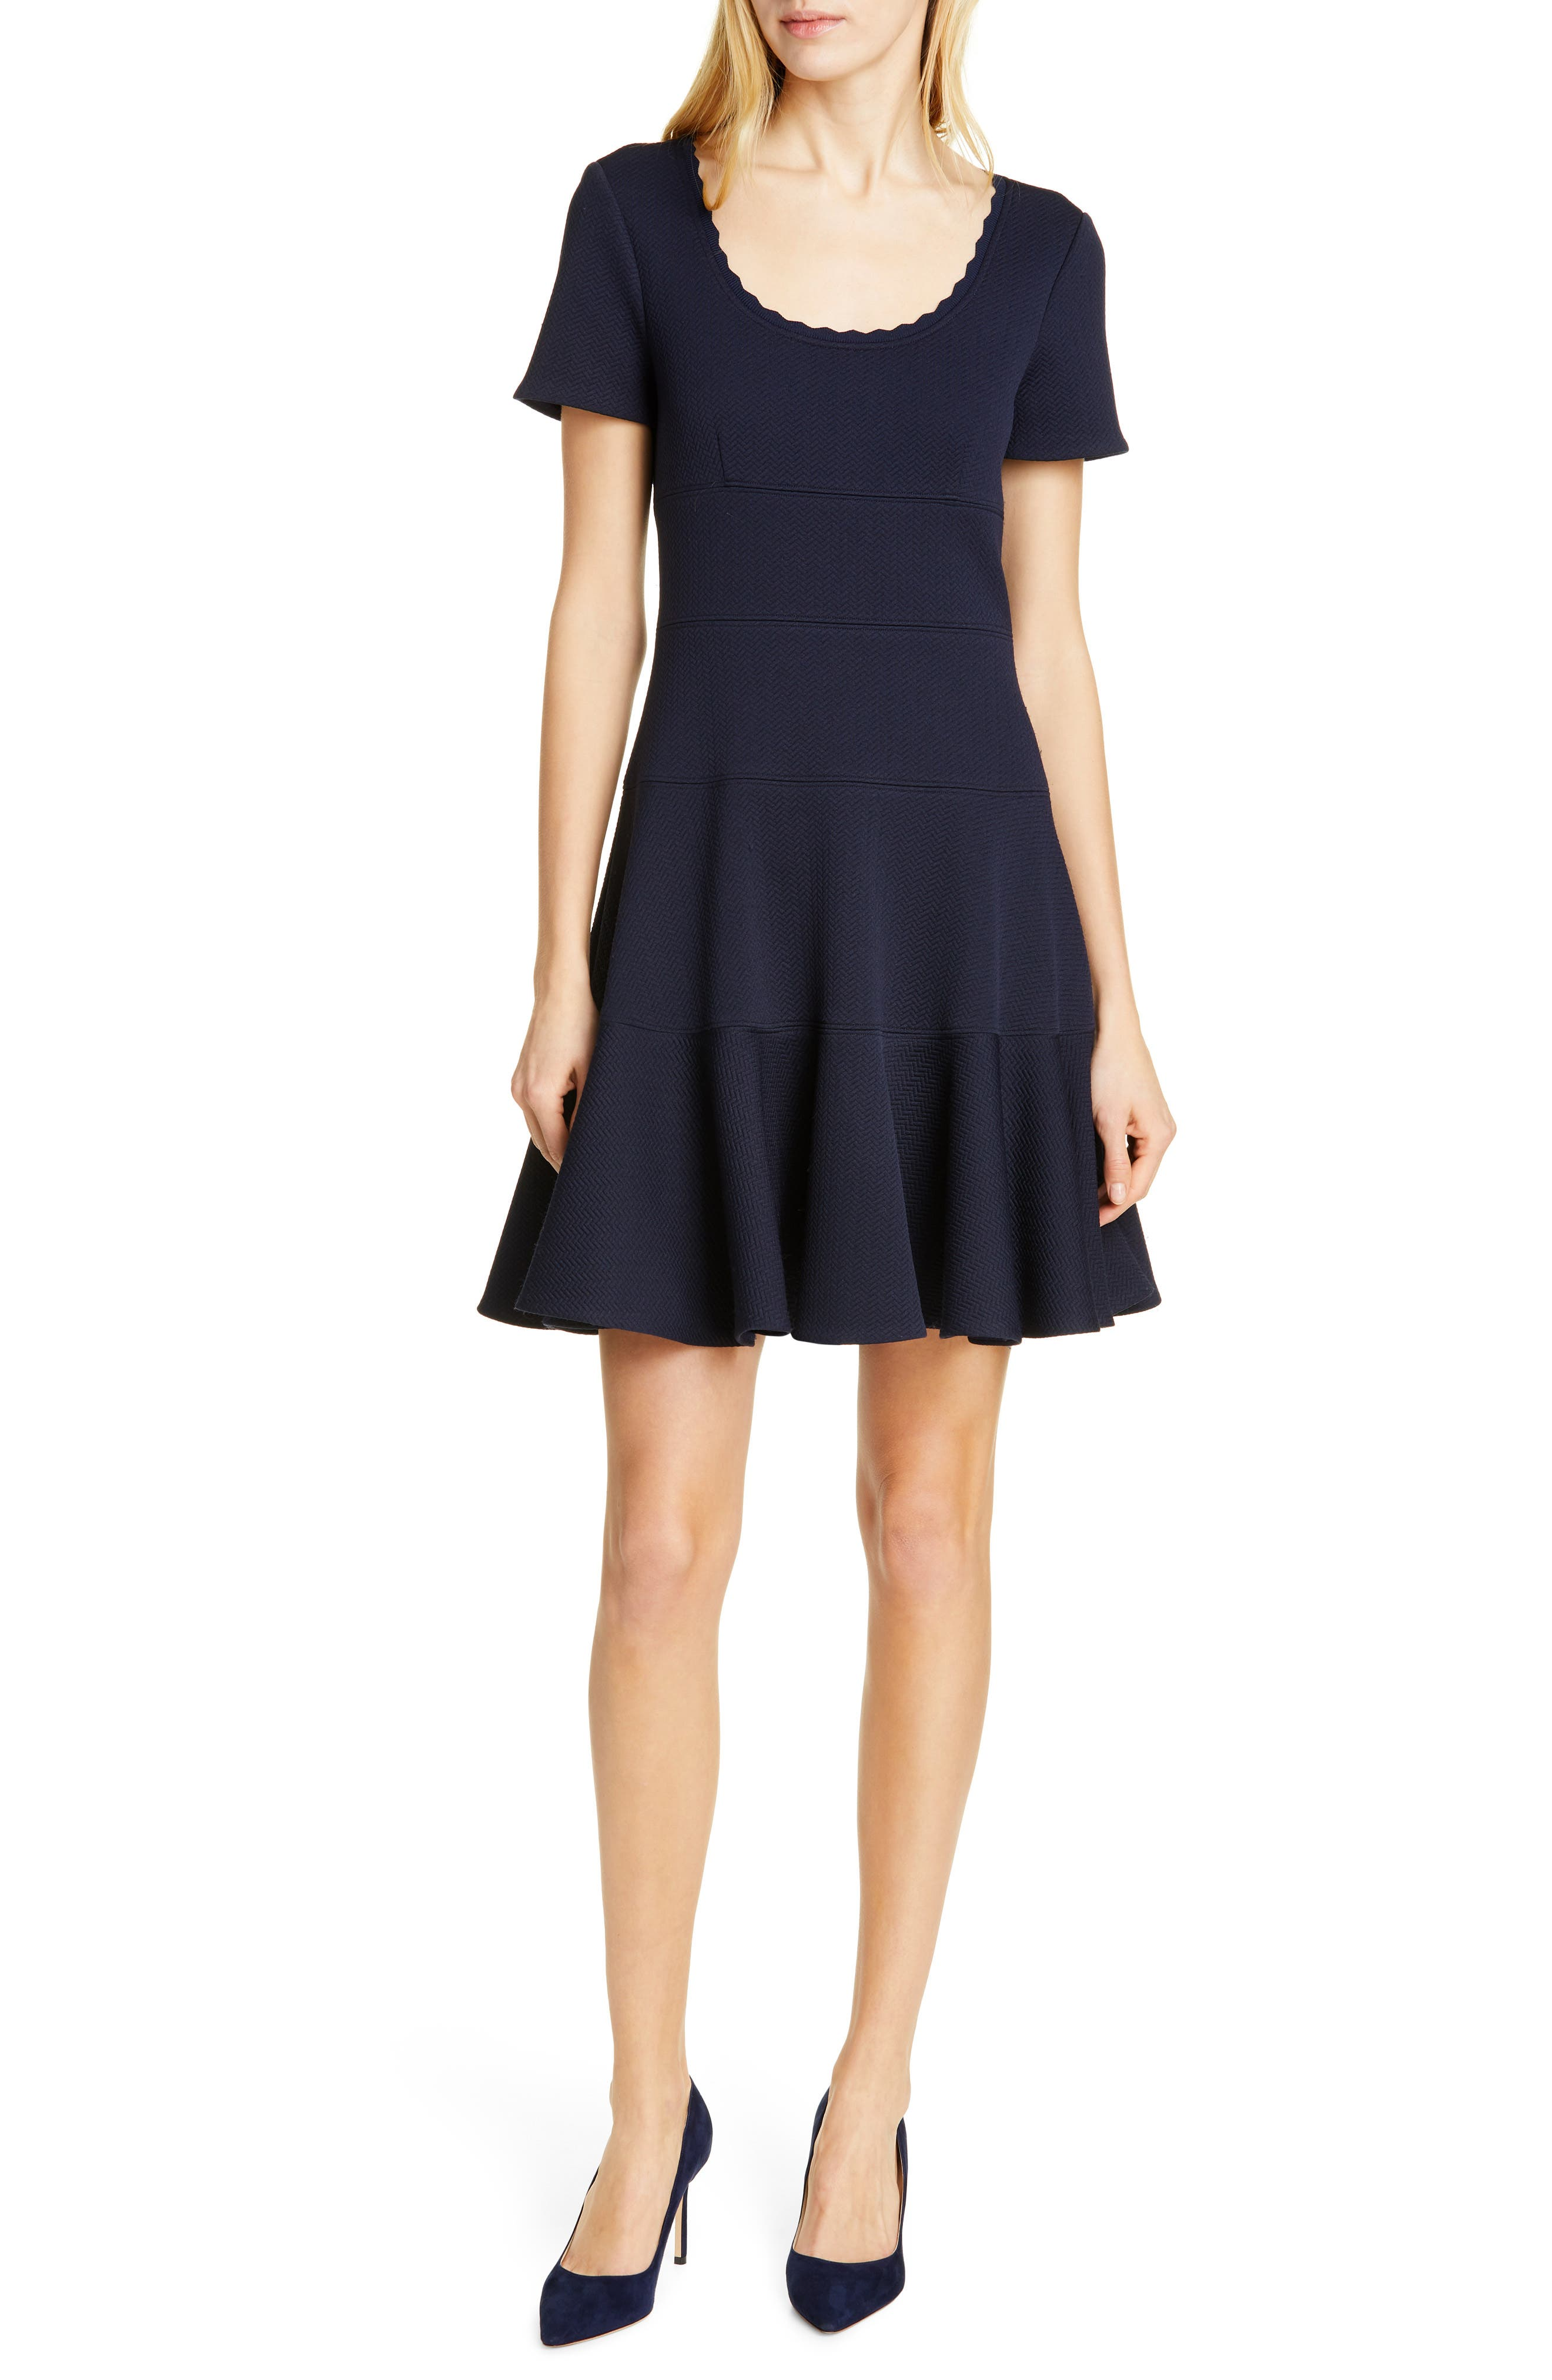 REBECCA TAYLOR Textured Scallop Detail Fit & Flare Dress, Main, color, NAVY